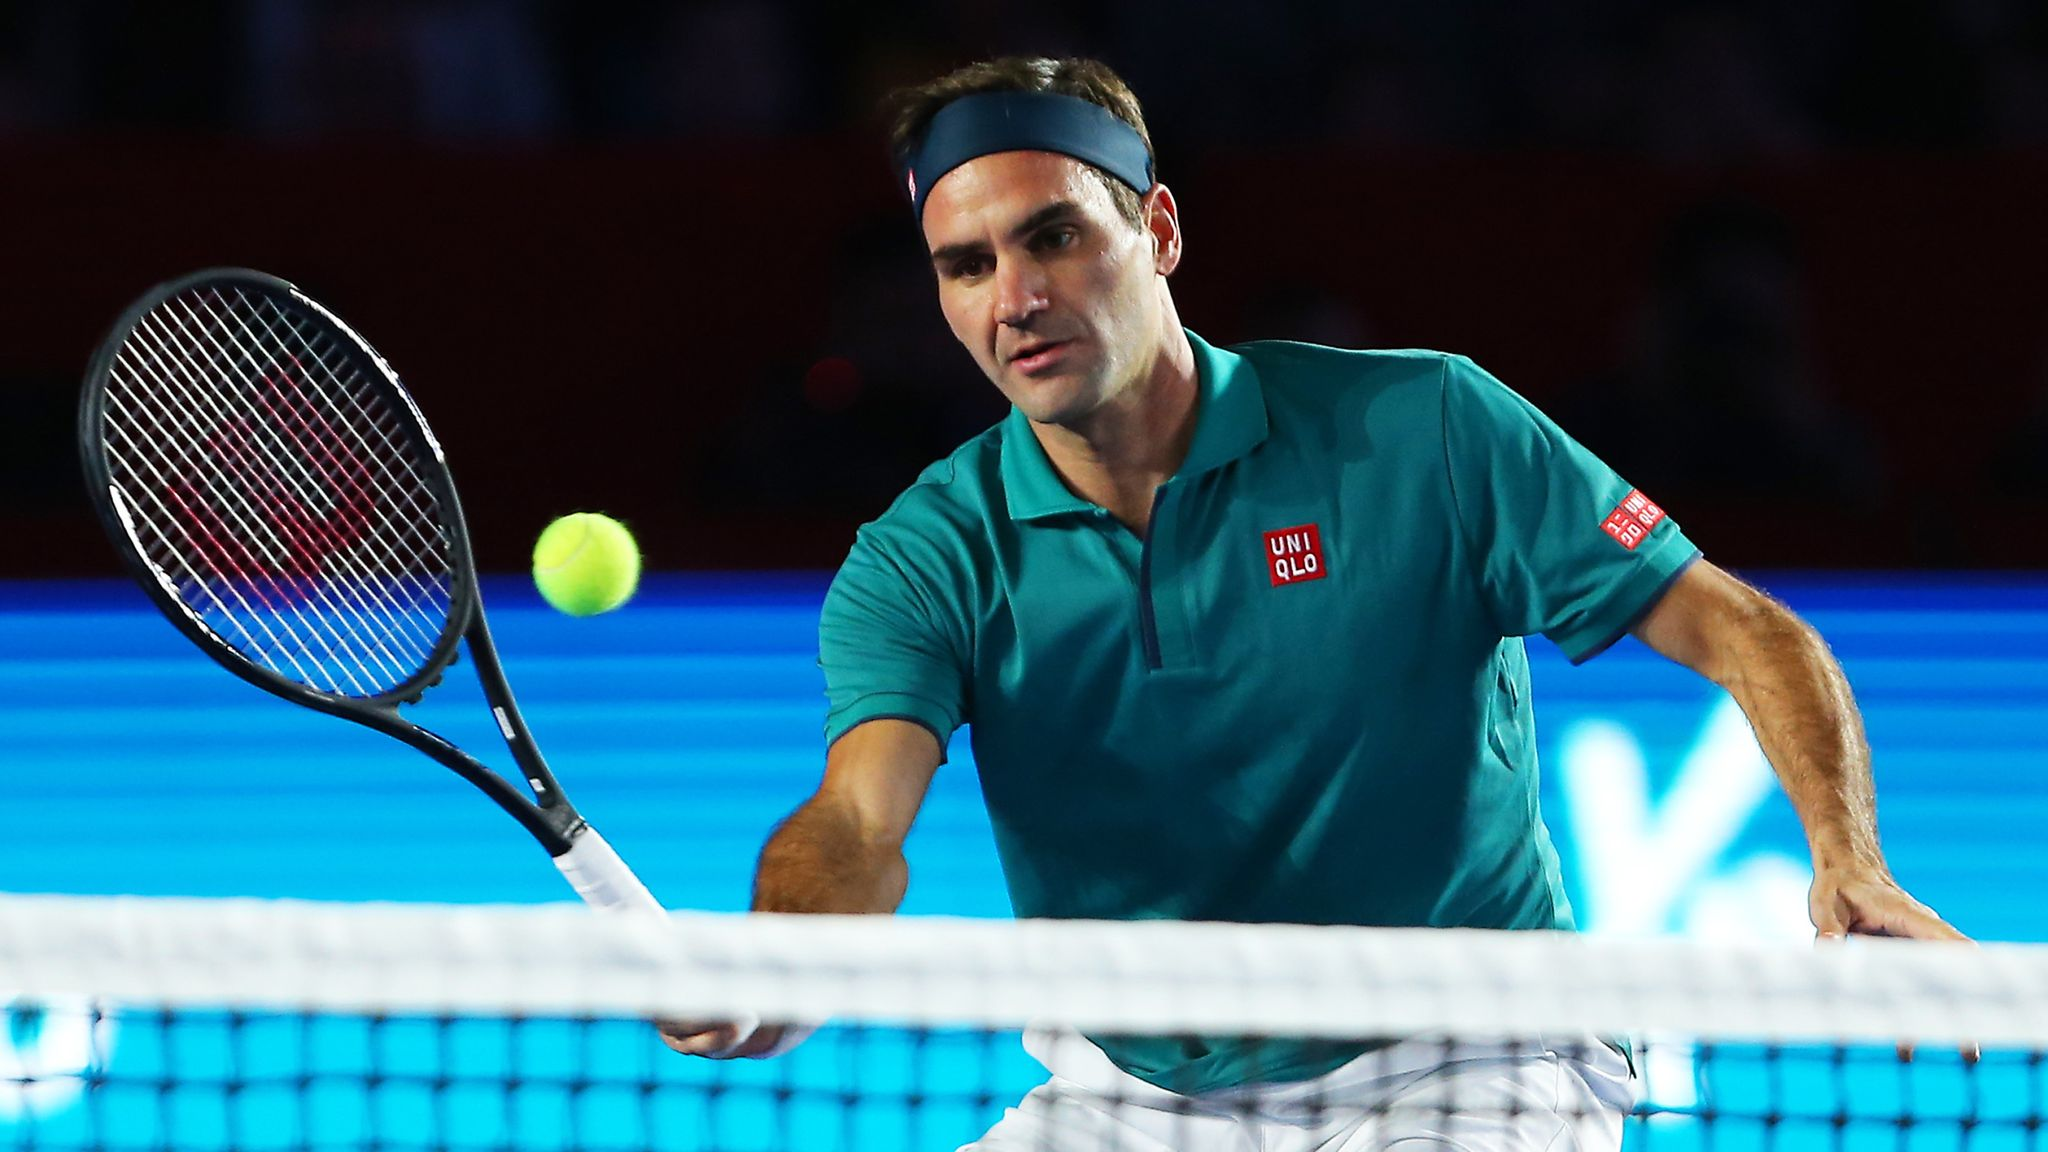 Roger Federer admits he suffered a 'bit of a breakdown' in Colombia after cancelled match